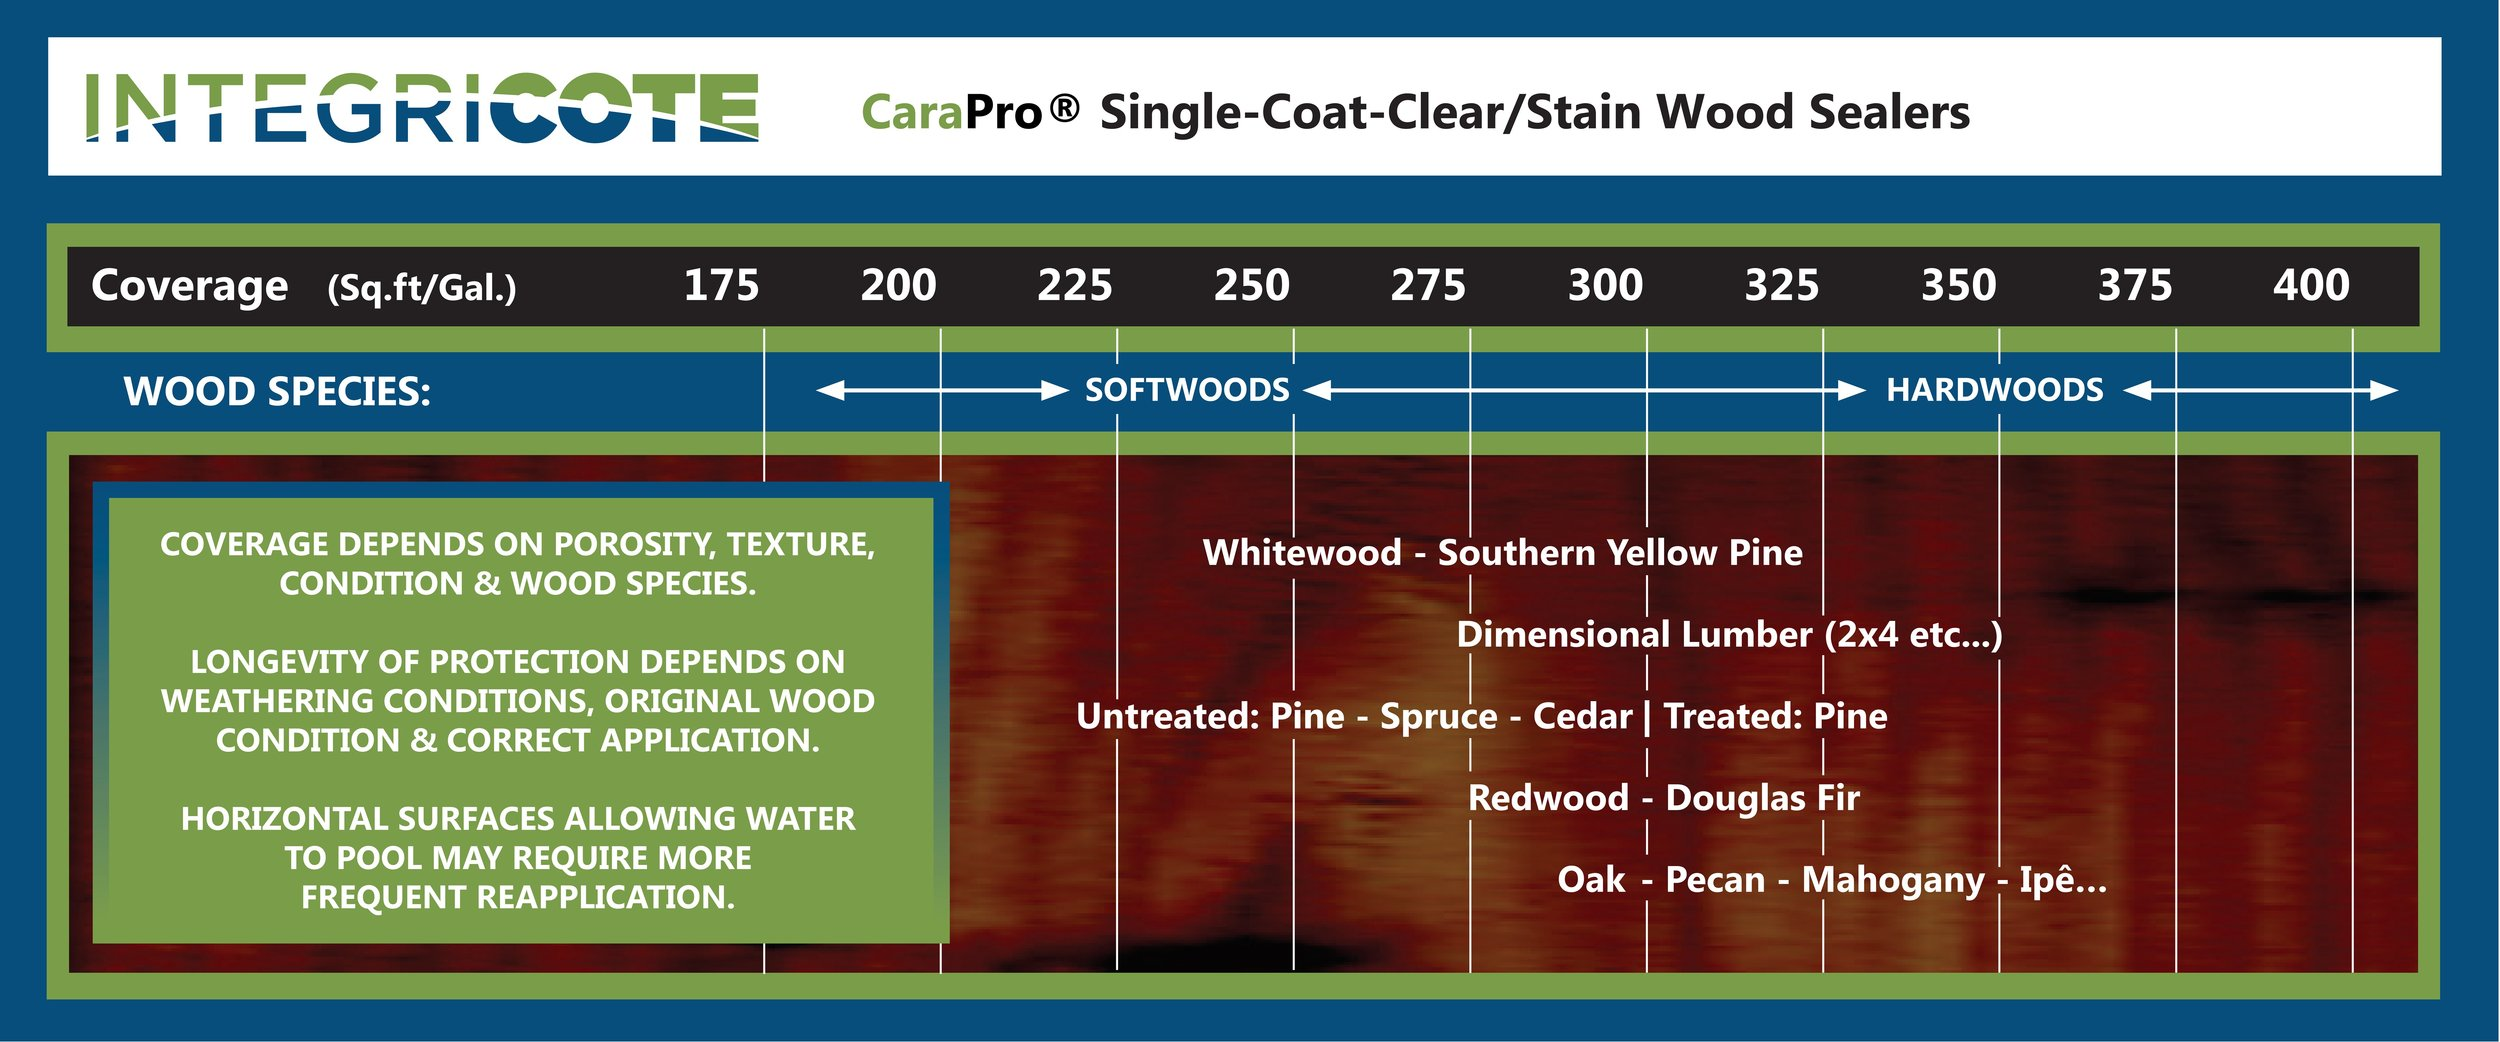 CaraPro Wood Sealer coverage-II.jpg